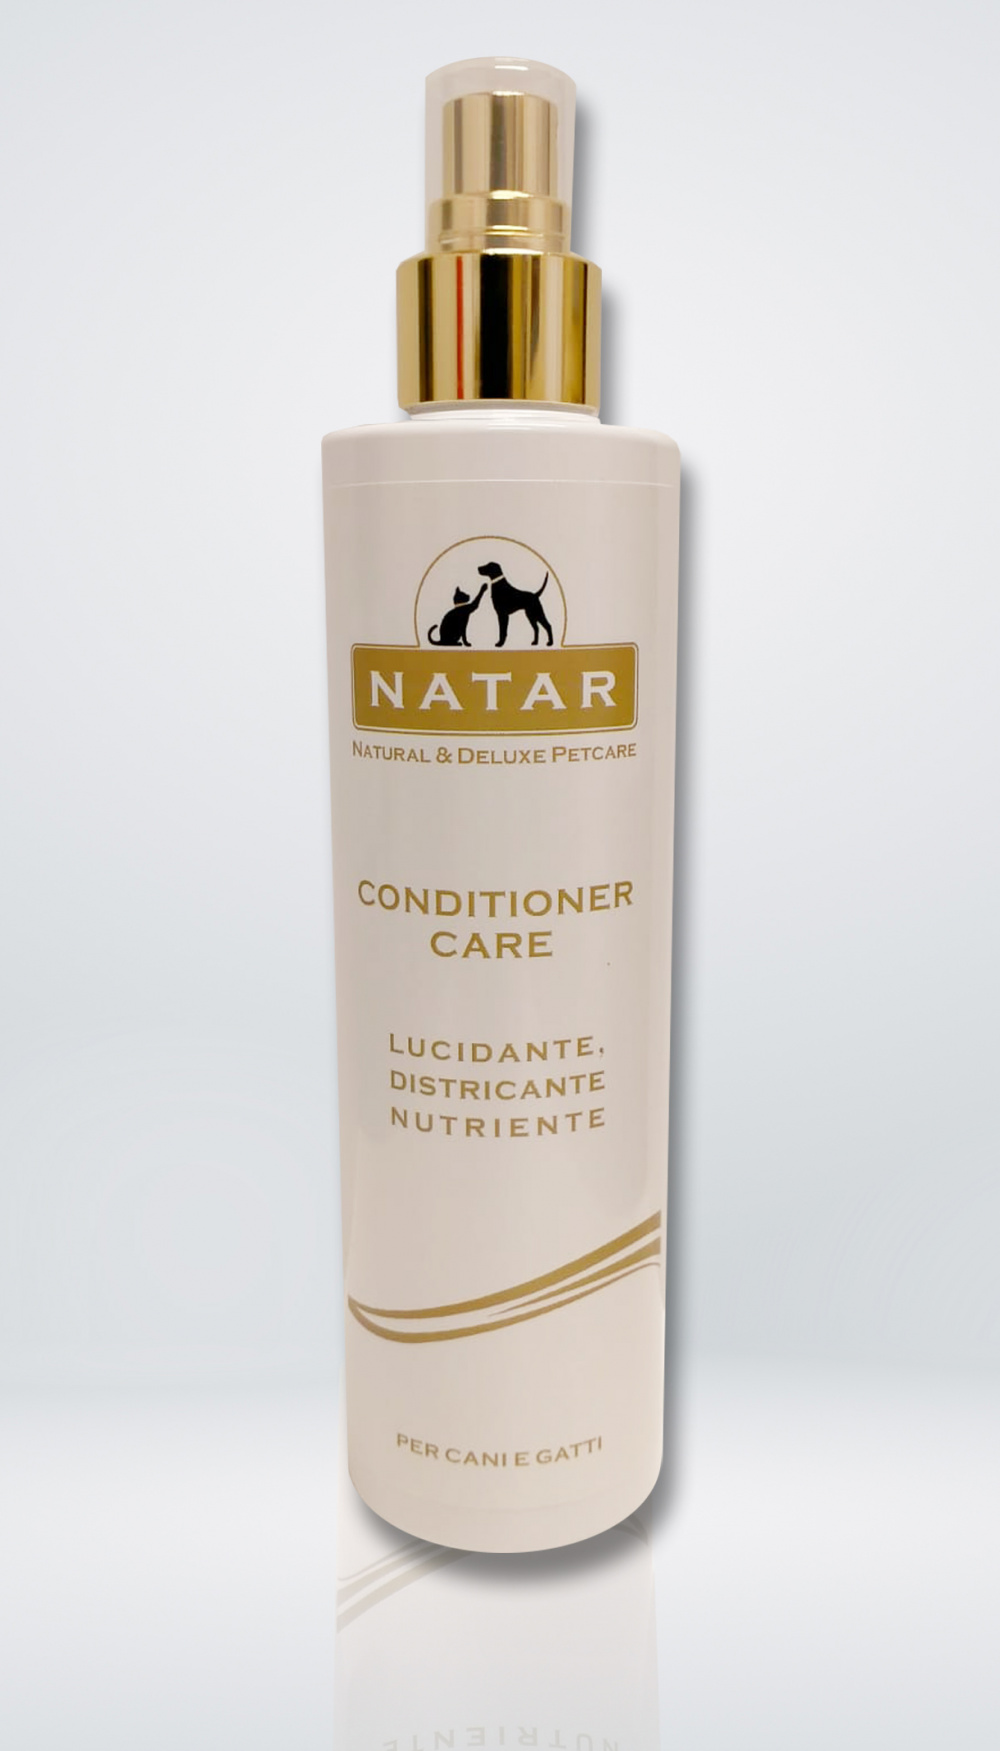 Natar Conditioner Care Spray for dogs